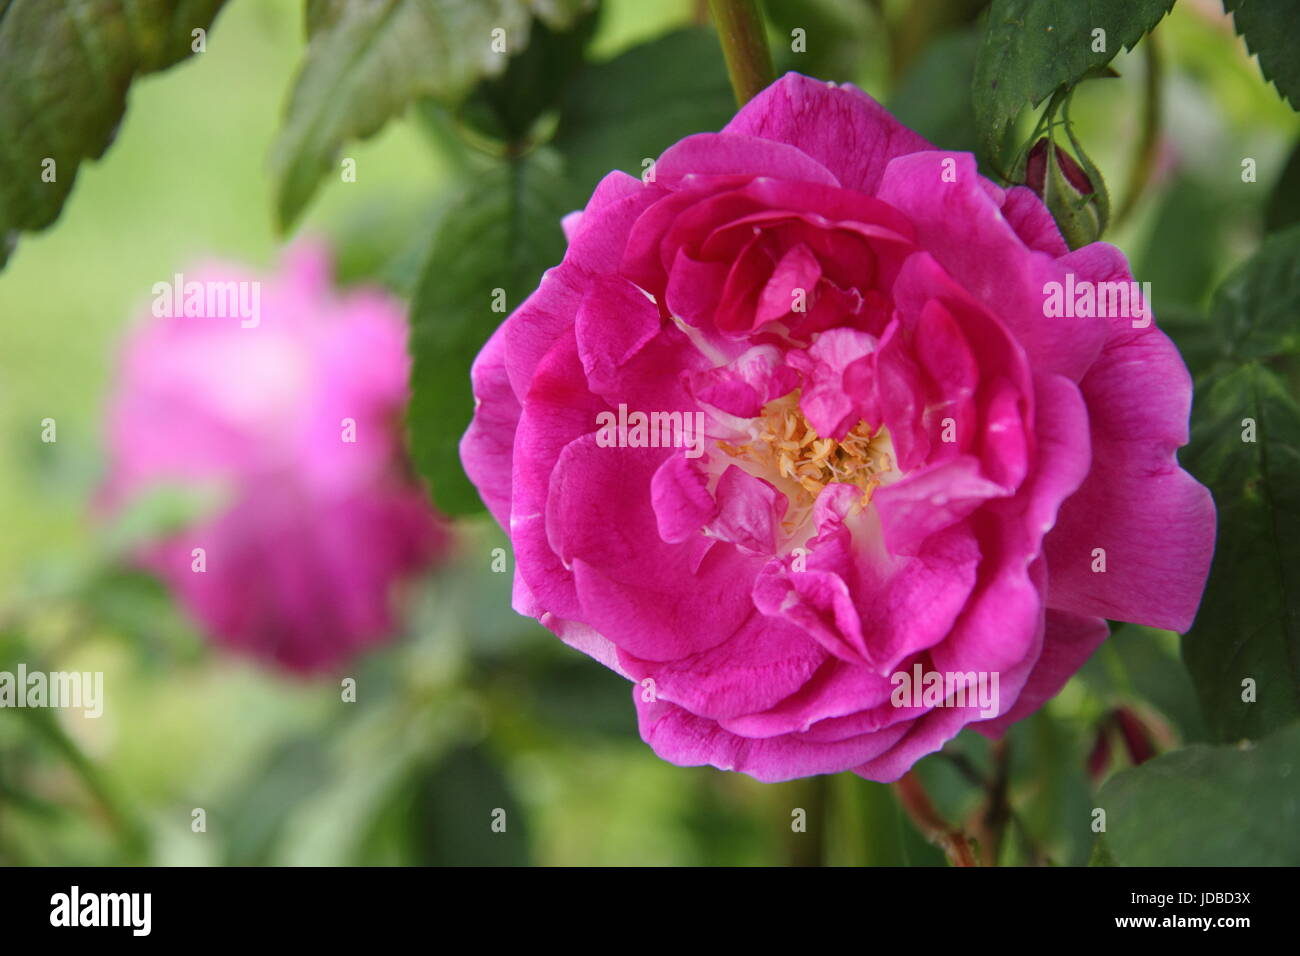 Rosa 'AMADIS', also called 'Crimson Boursault', a thornless, rambling rose, in full bloom in an - Stock Image